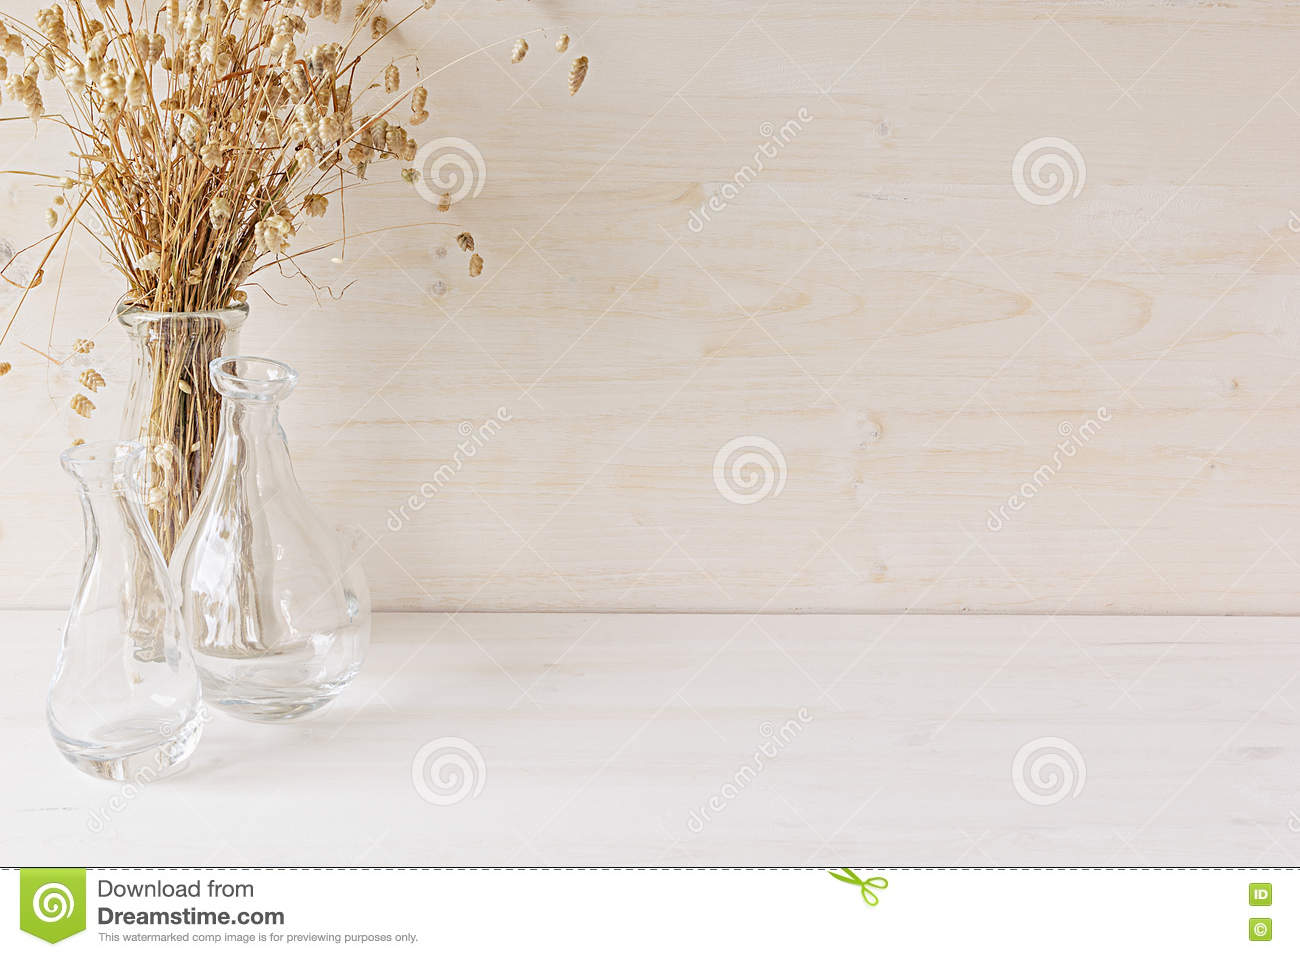 Soft Home Decor Of Glass Vase With Spikelets On White Wood